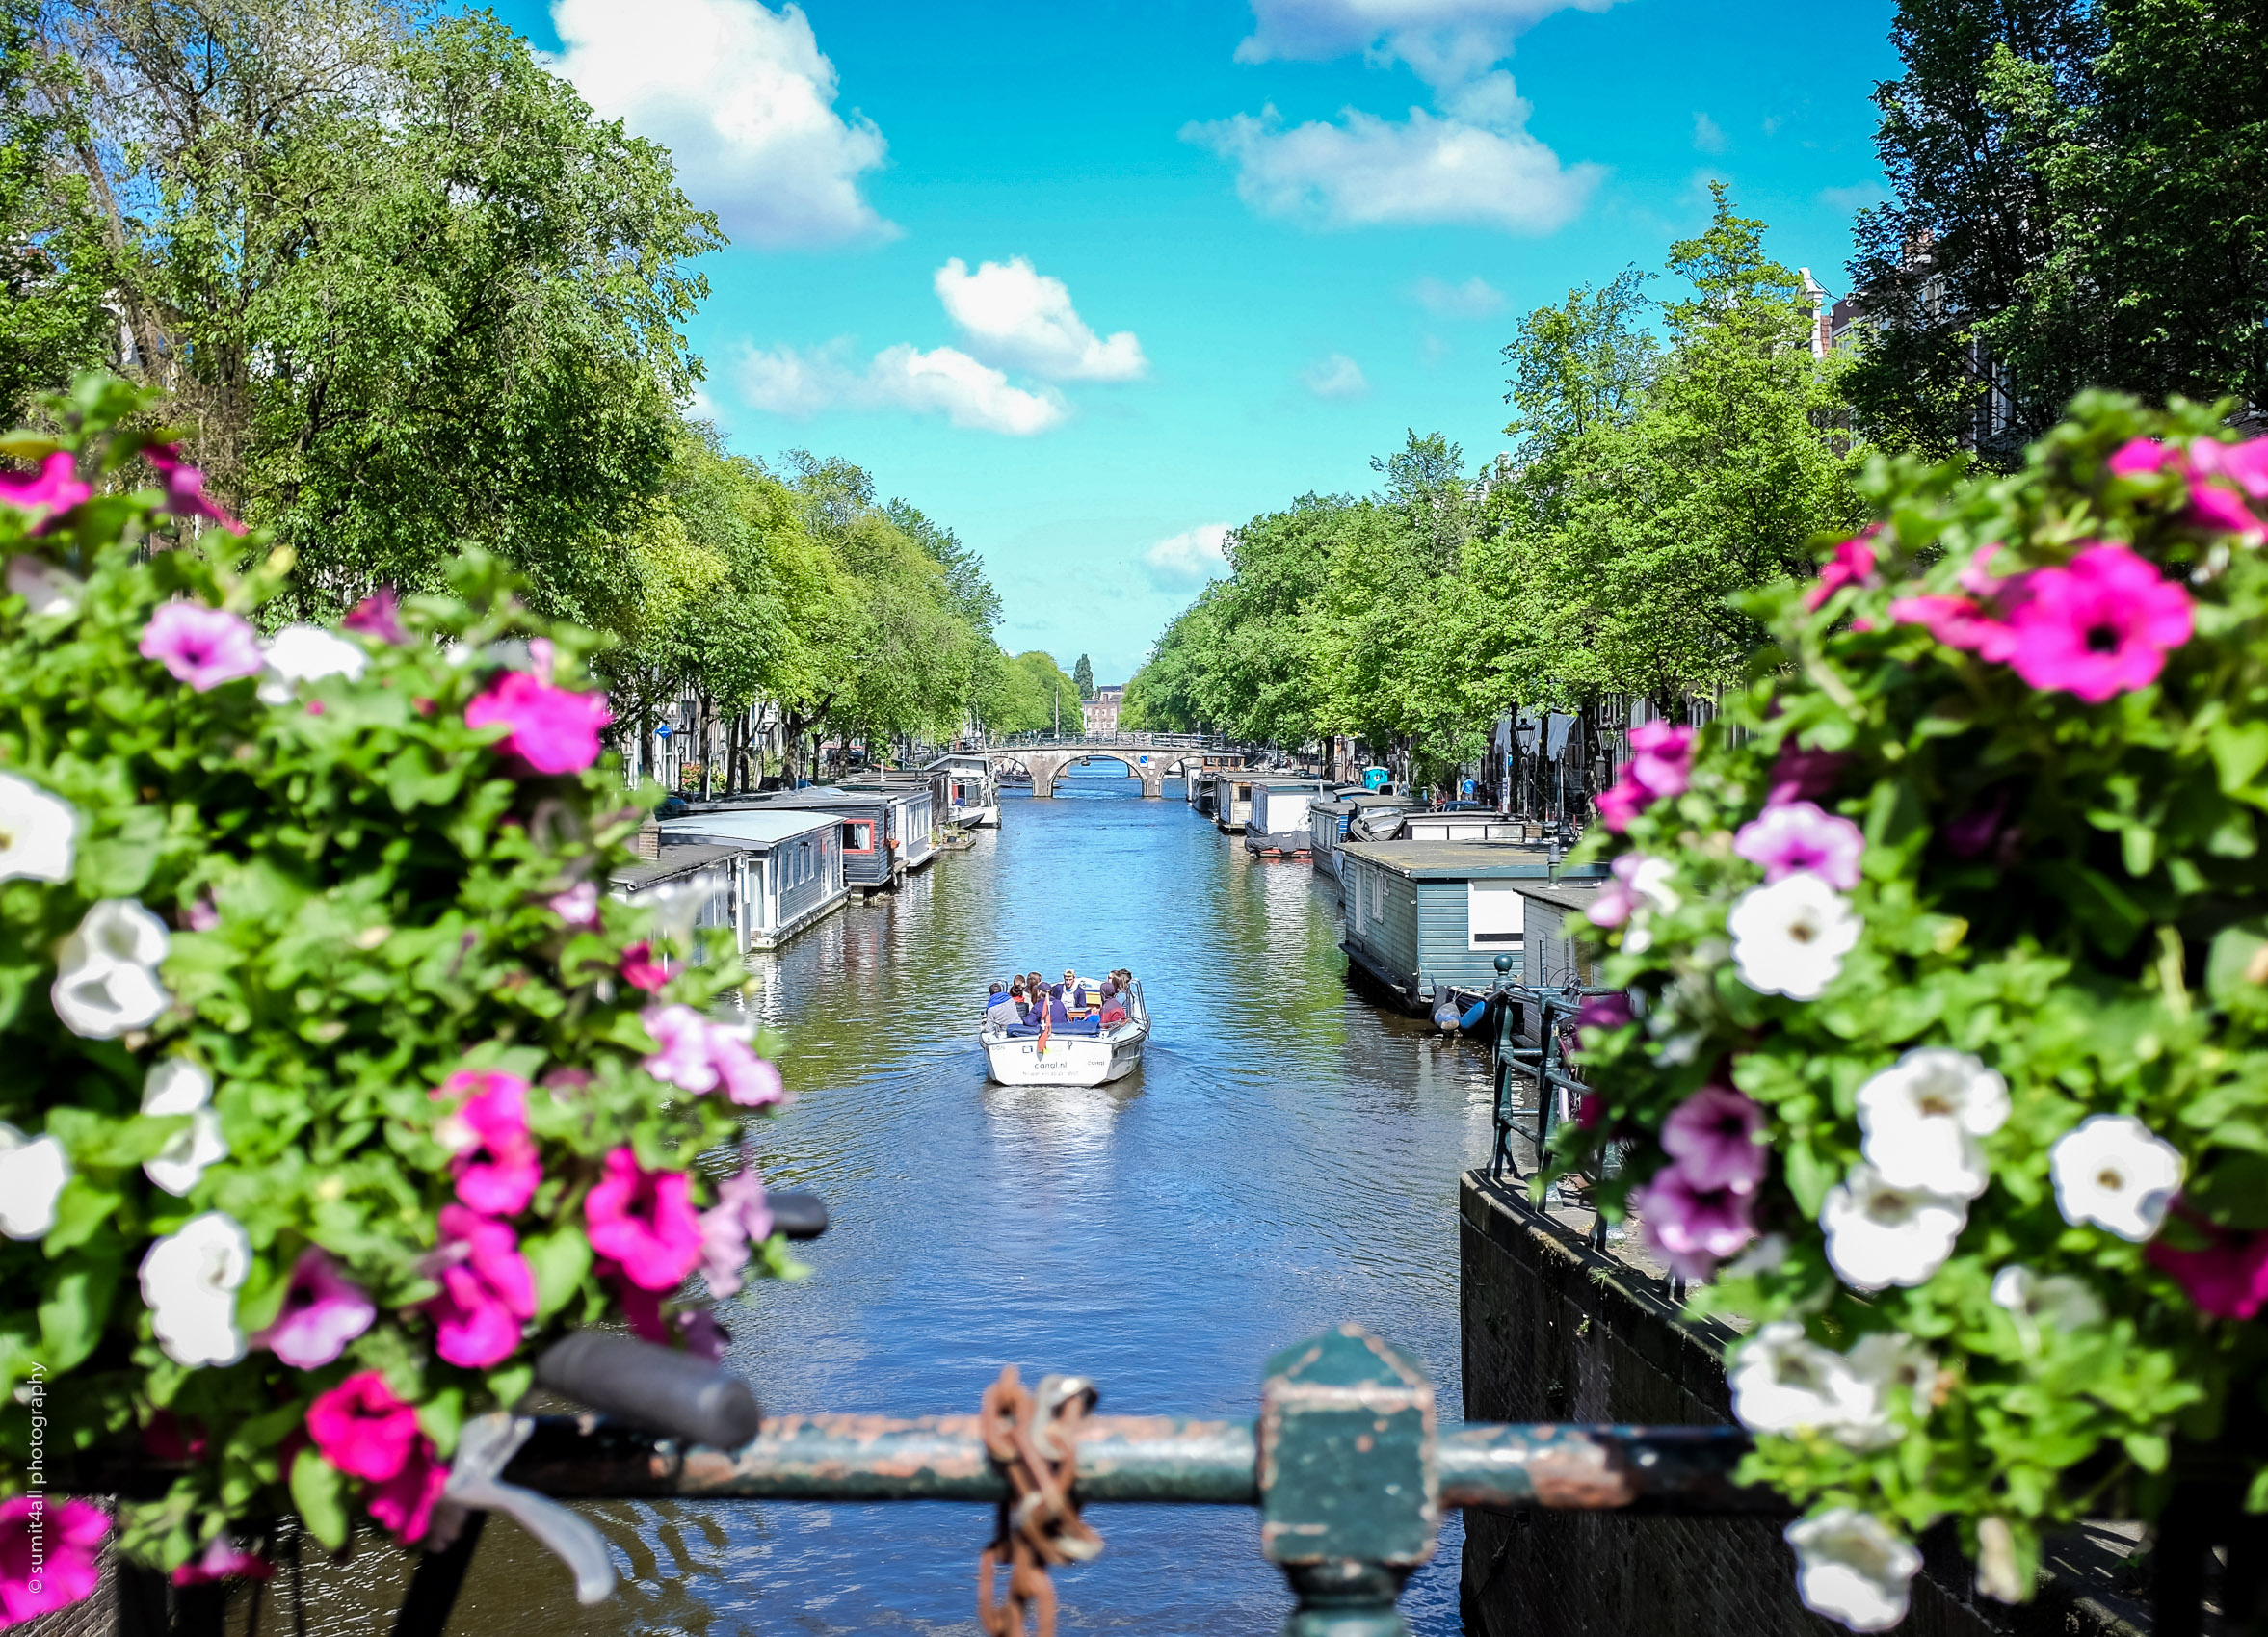 Wonderful summer day in Amsterdam